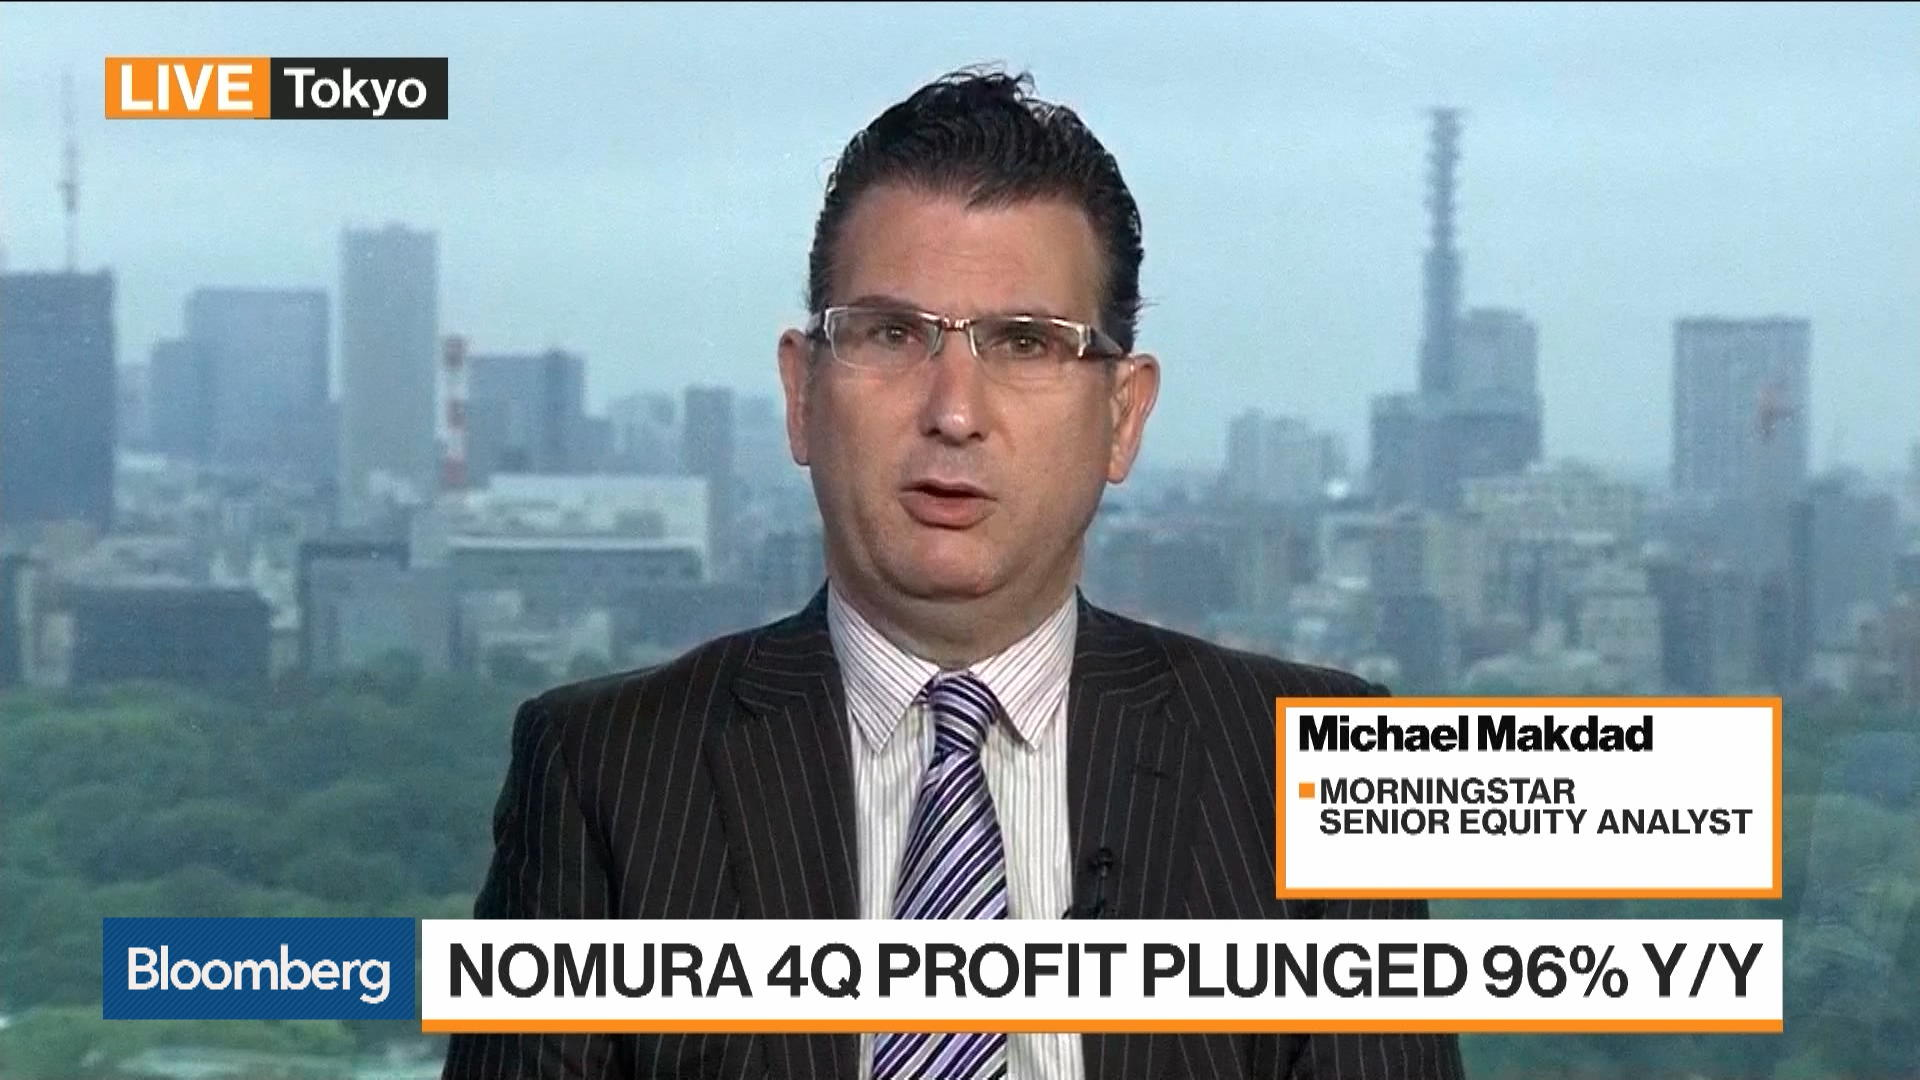 Nomura Should Focus More on Japan Business: Morningstar's Makdad